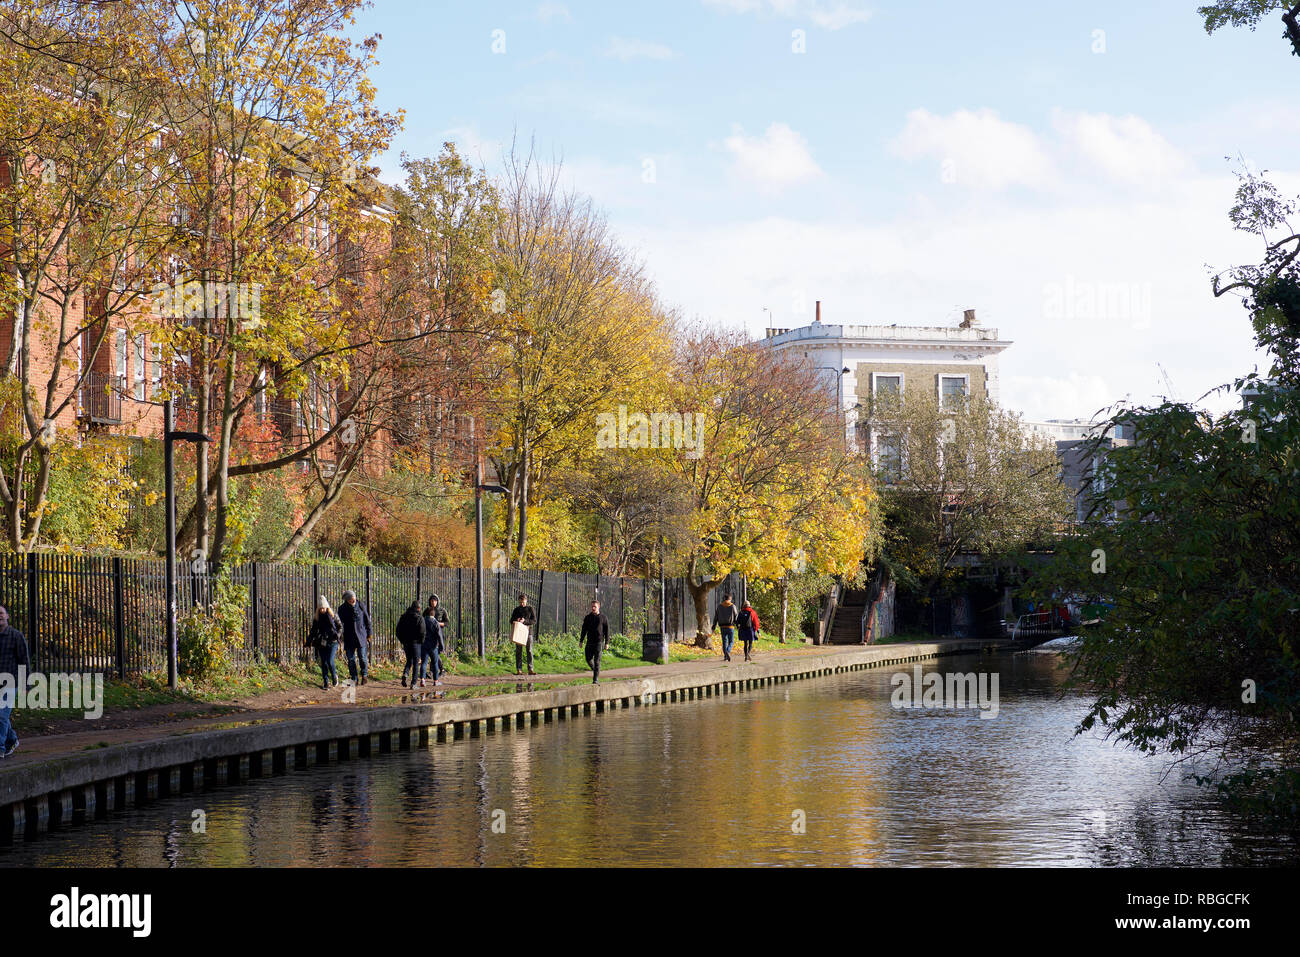 Towpath alongside the Regent's Canal in London - Stock Image